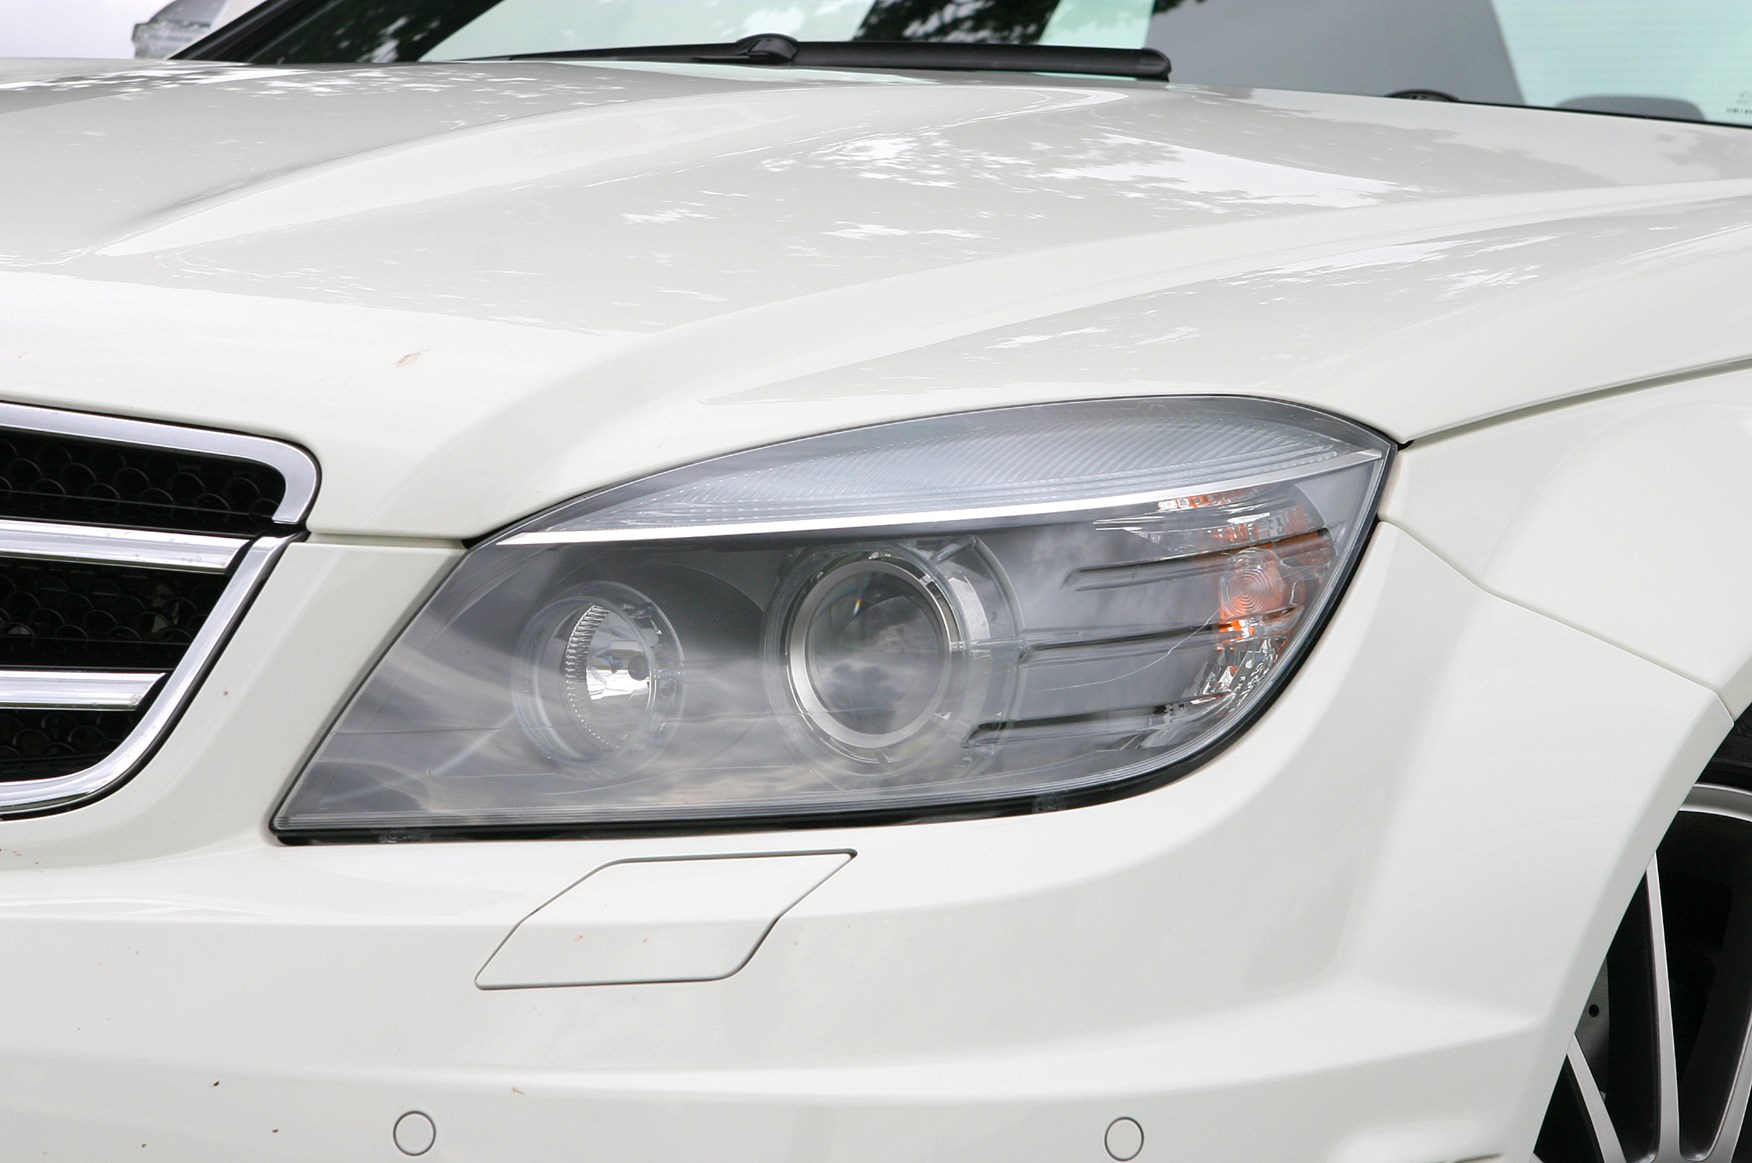 Mercedes benz c class amg review 2008 2011 parkers for How much is a mercedes benz c class